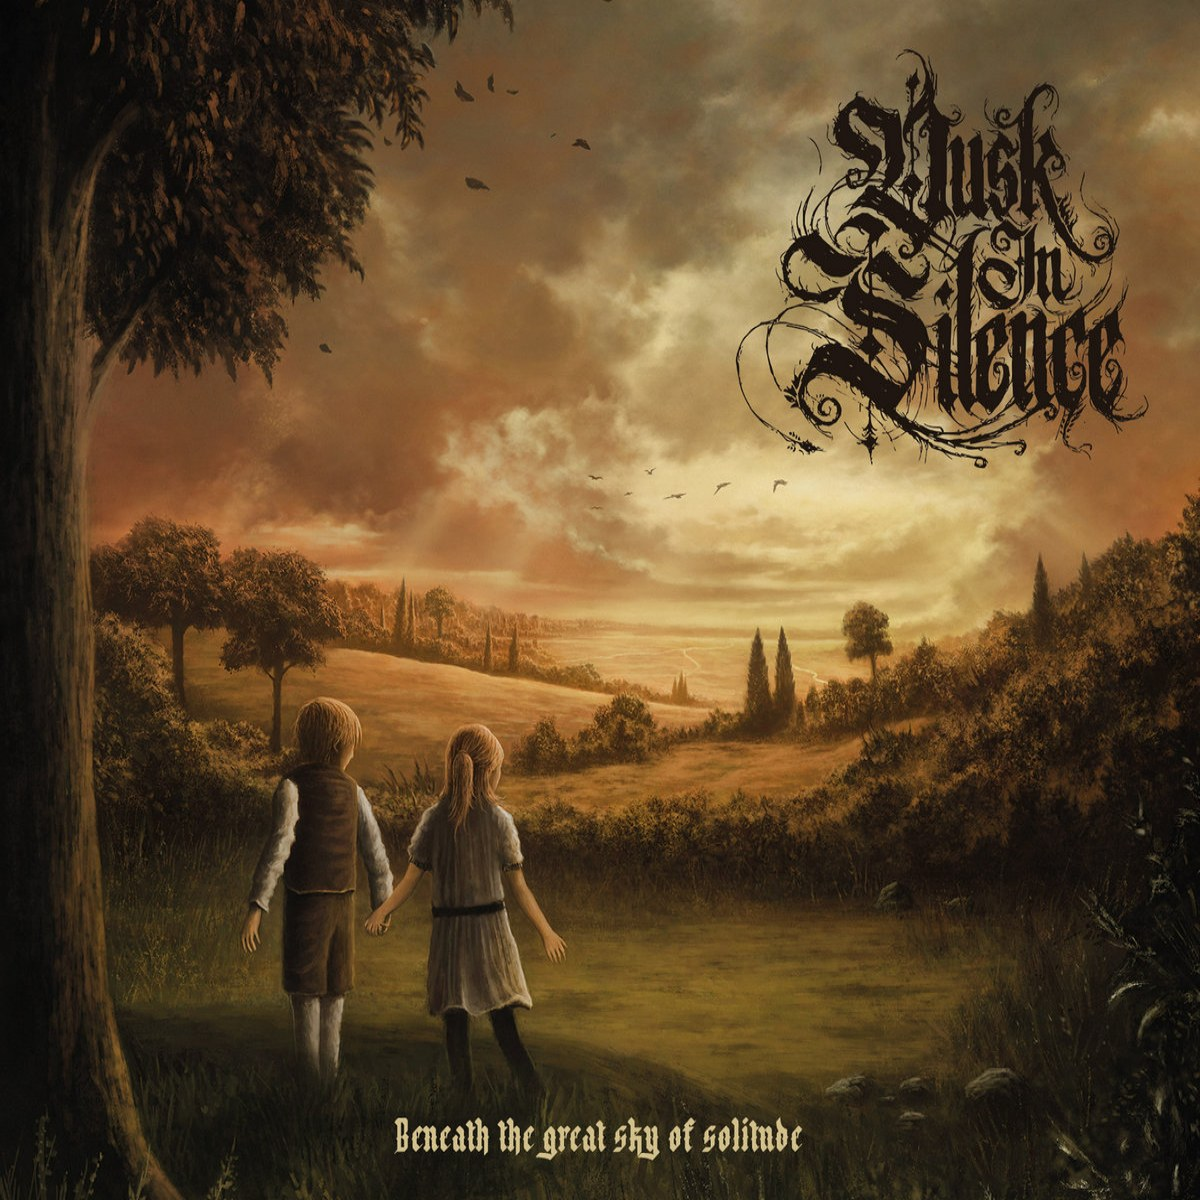 Reviews for Dusk in Silence - Beneath the Great Sky of Solitude